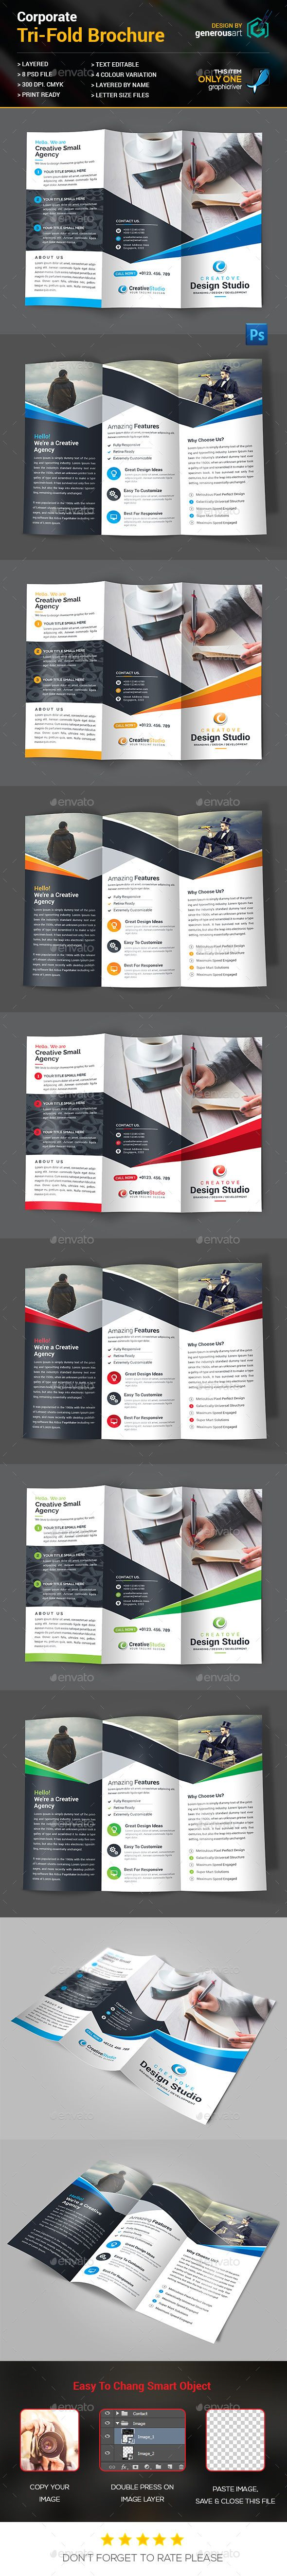 Tri-Fold Brochure Template PSD. Download here: http://graphicriver.net/item/trifold-brochure/14757044?ref=ksioks